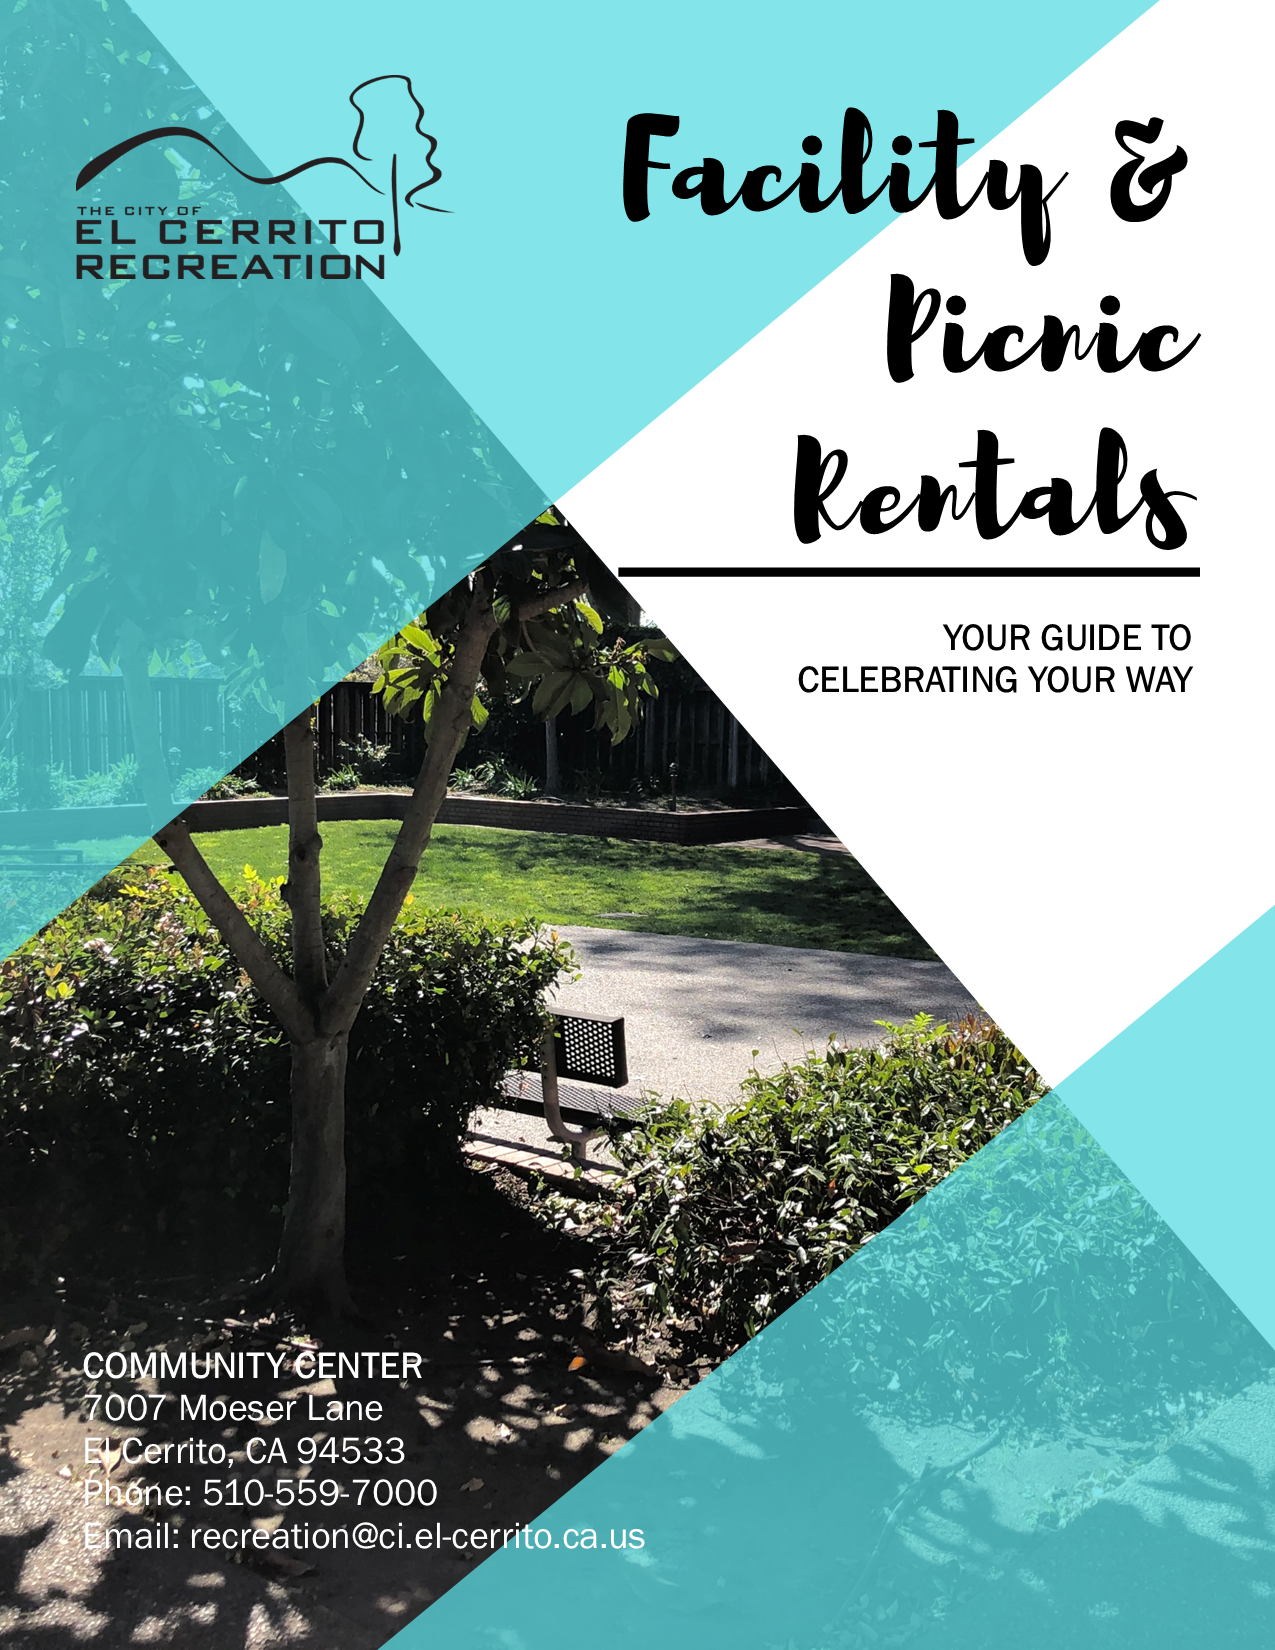 Facility Picnic Rental Brochure